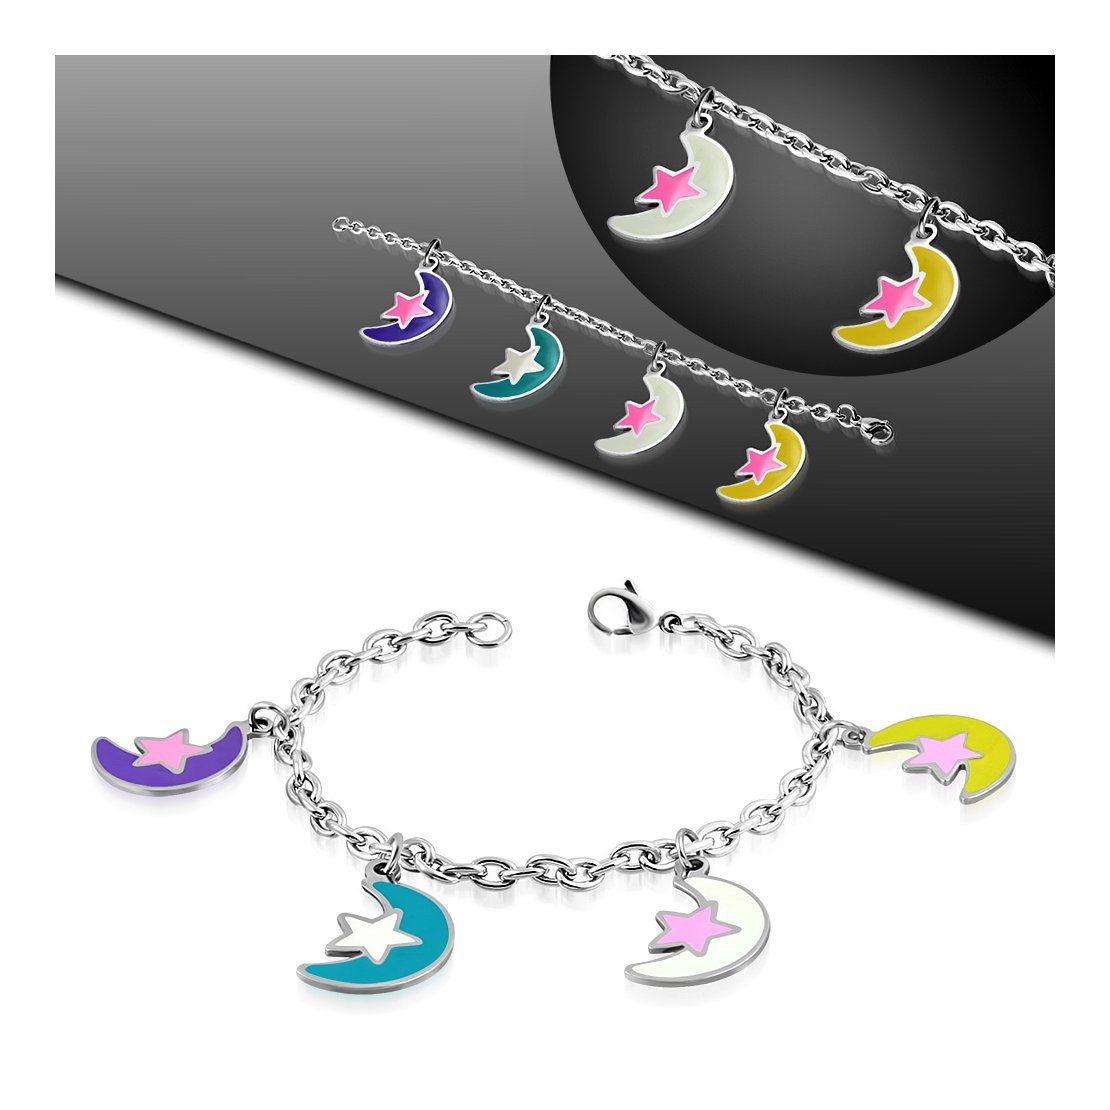 Stainless Steel Enameled Colorful Half-Moon Crescent Charm Link Chain Bracelet// Anklet